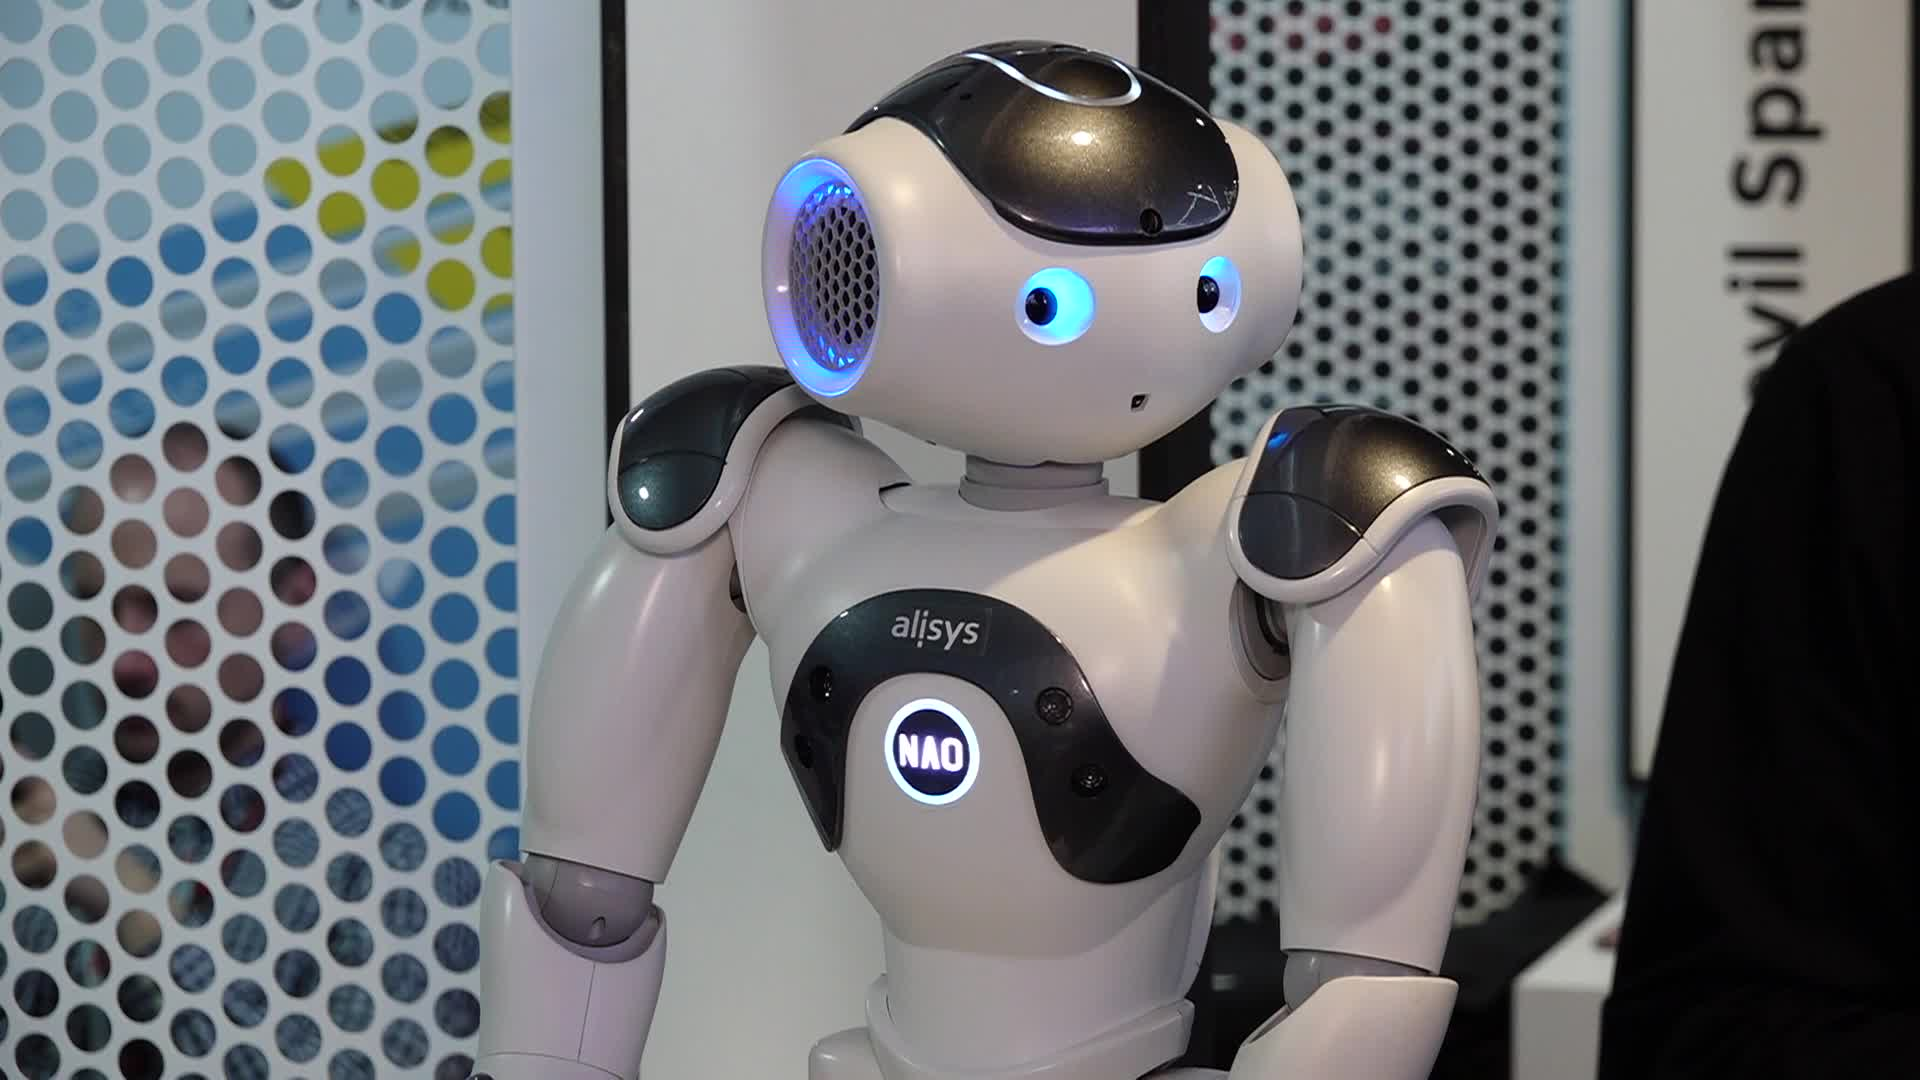 Robots Interact With Human At Mobile World Congress